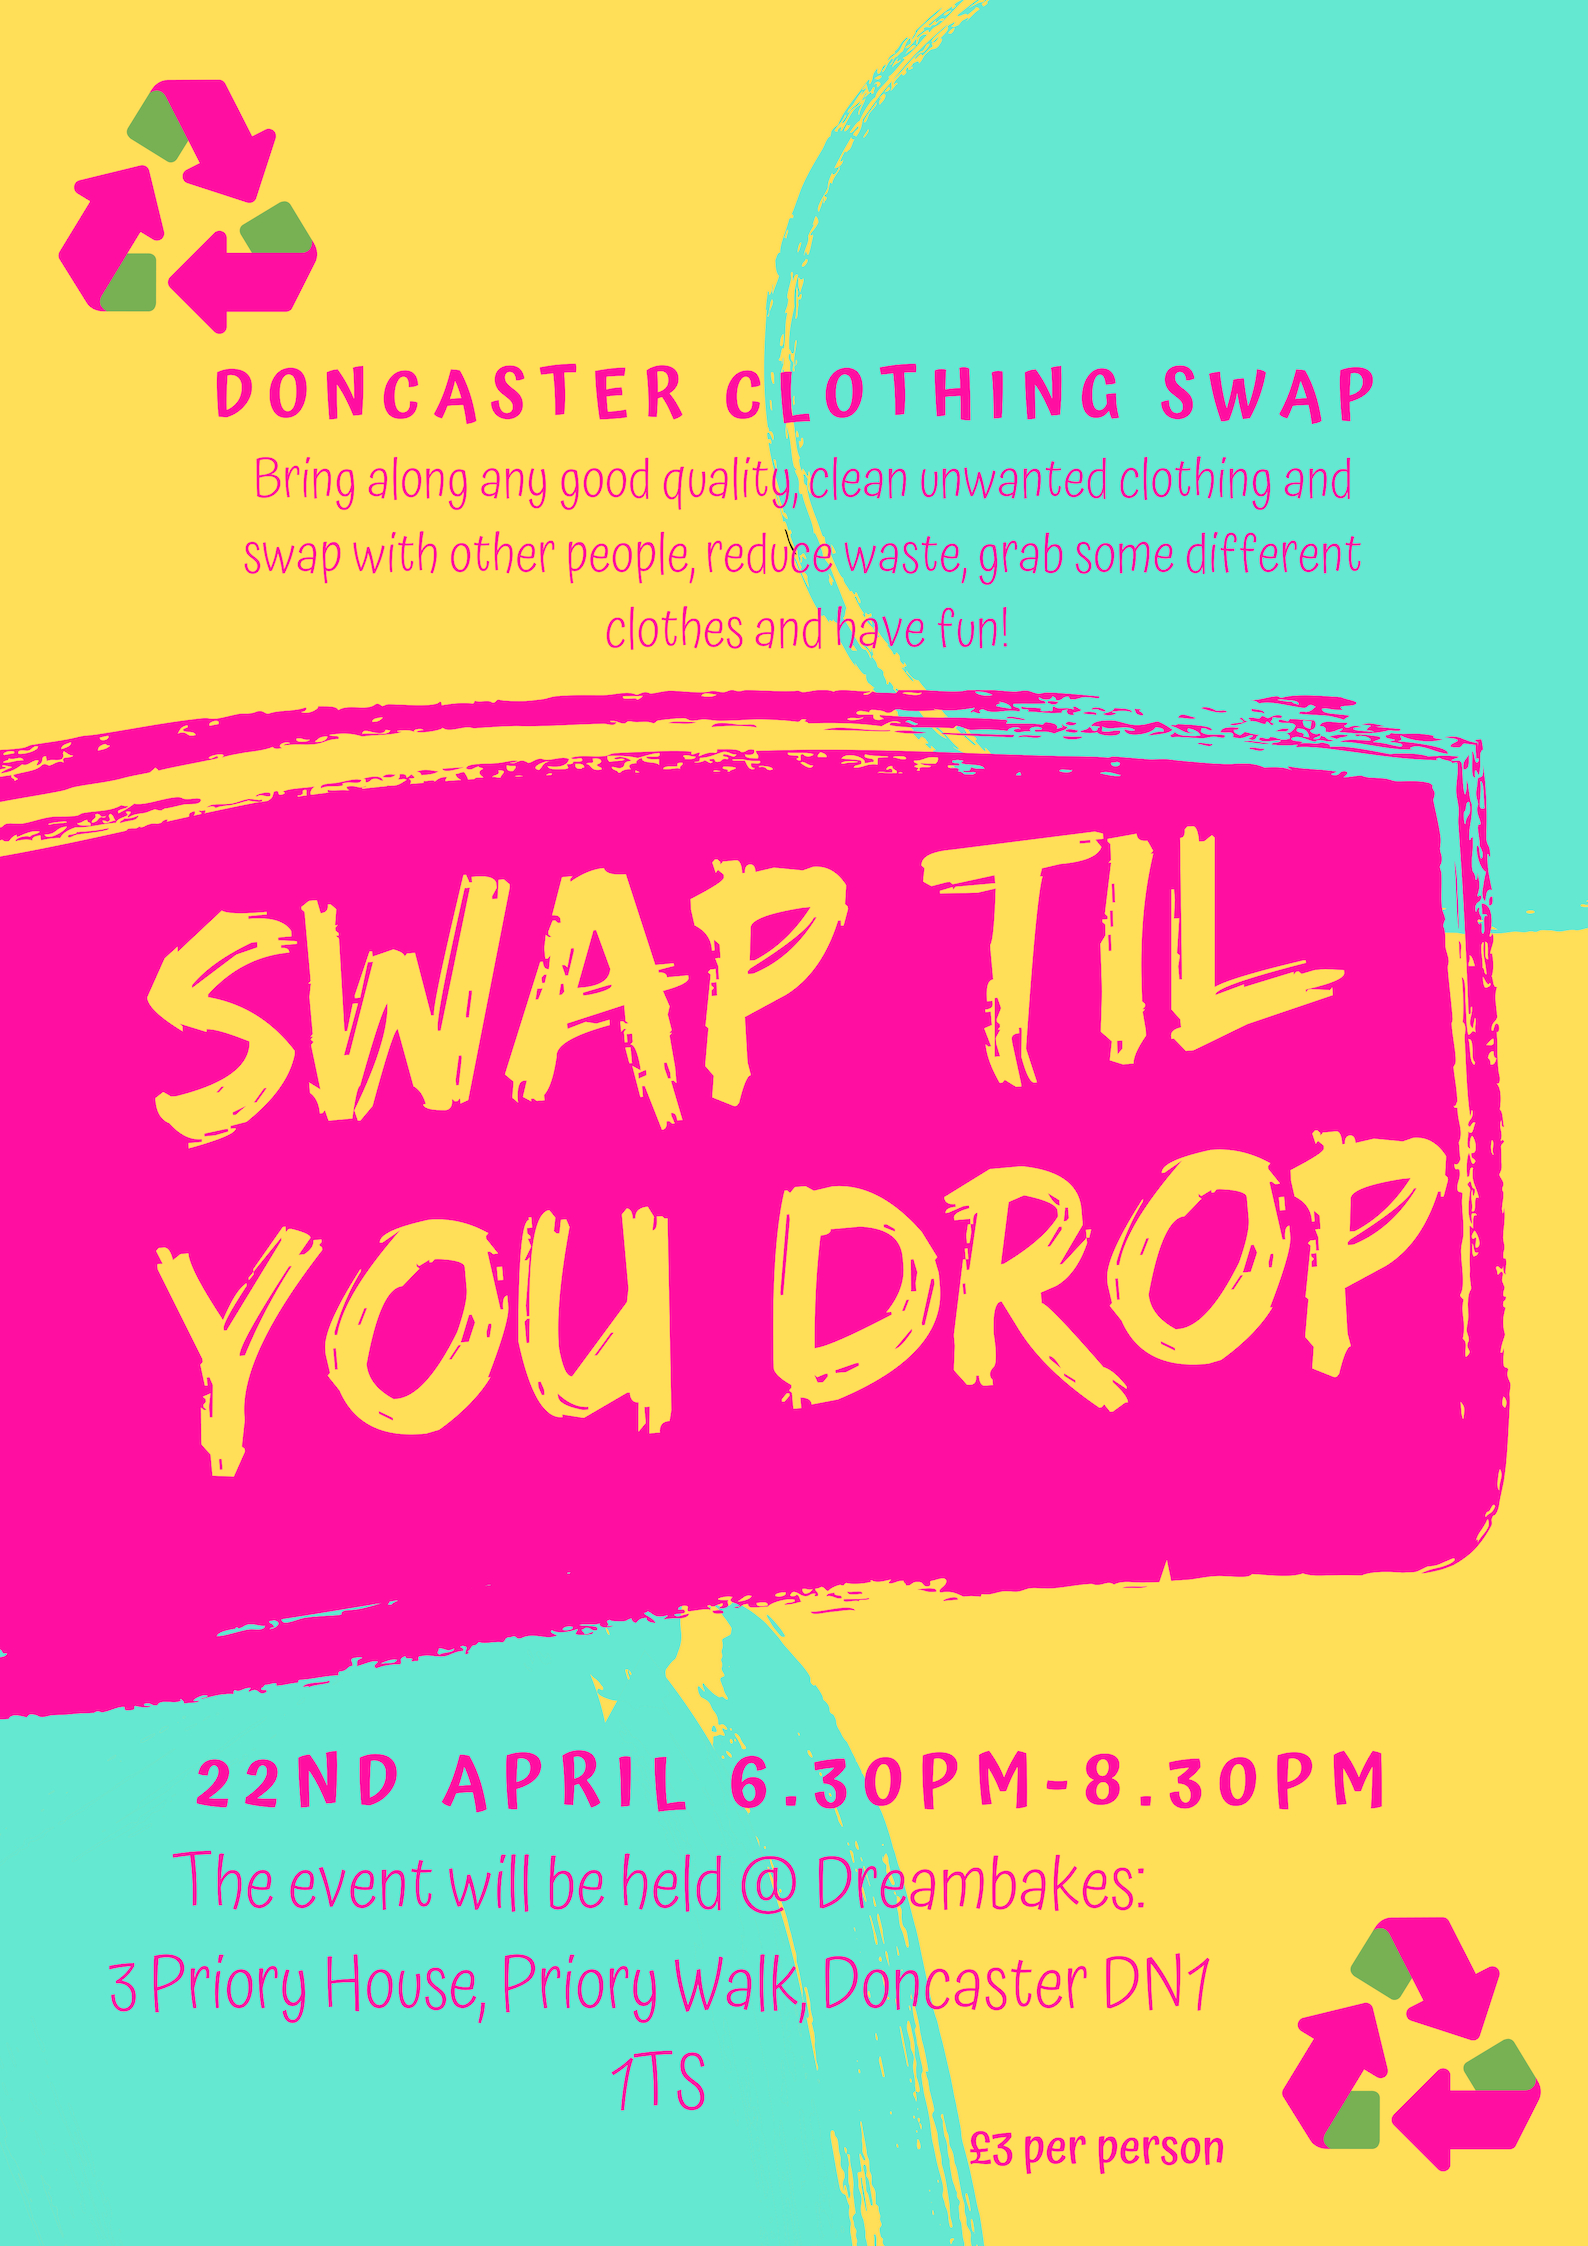 Doncaster Clothing Swap JPG